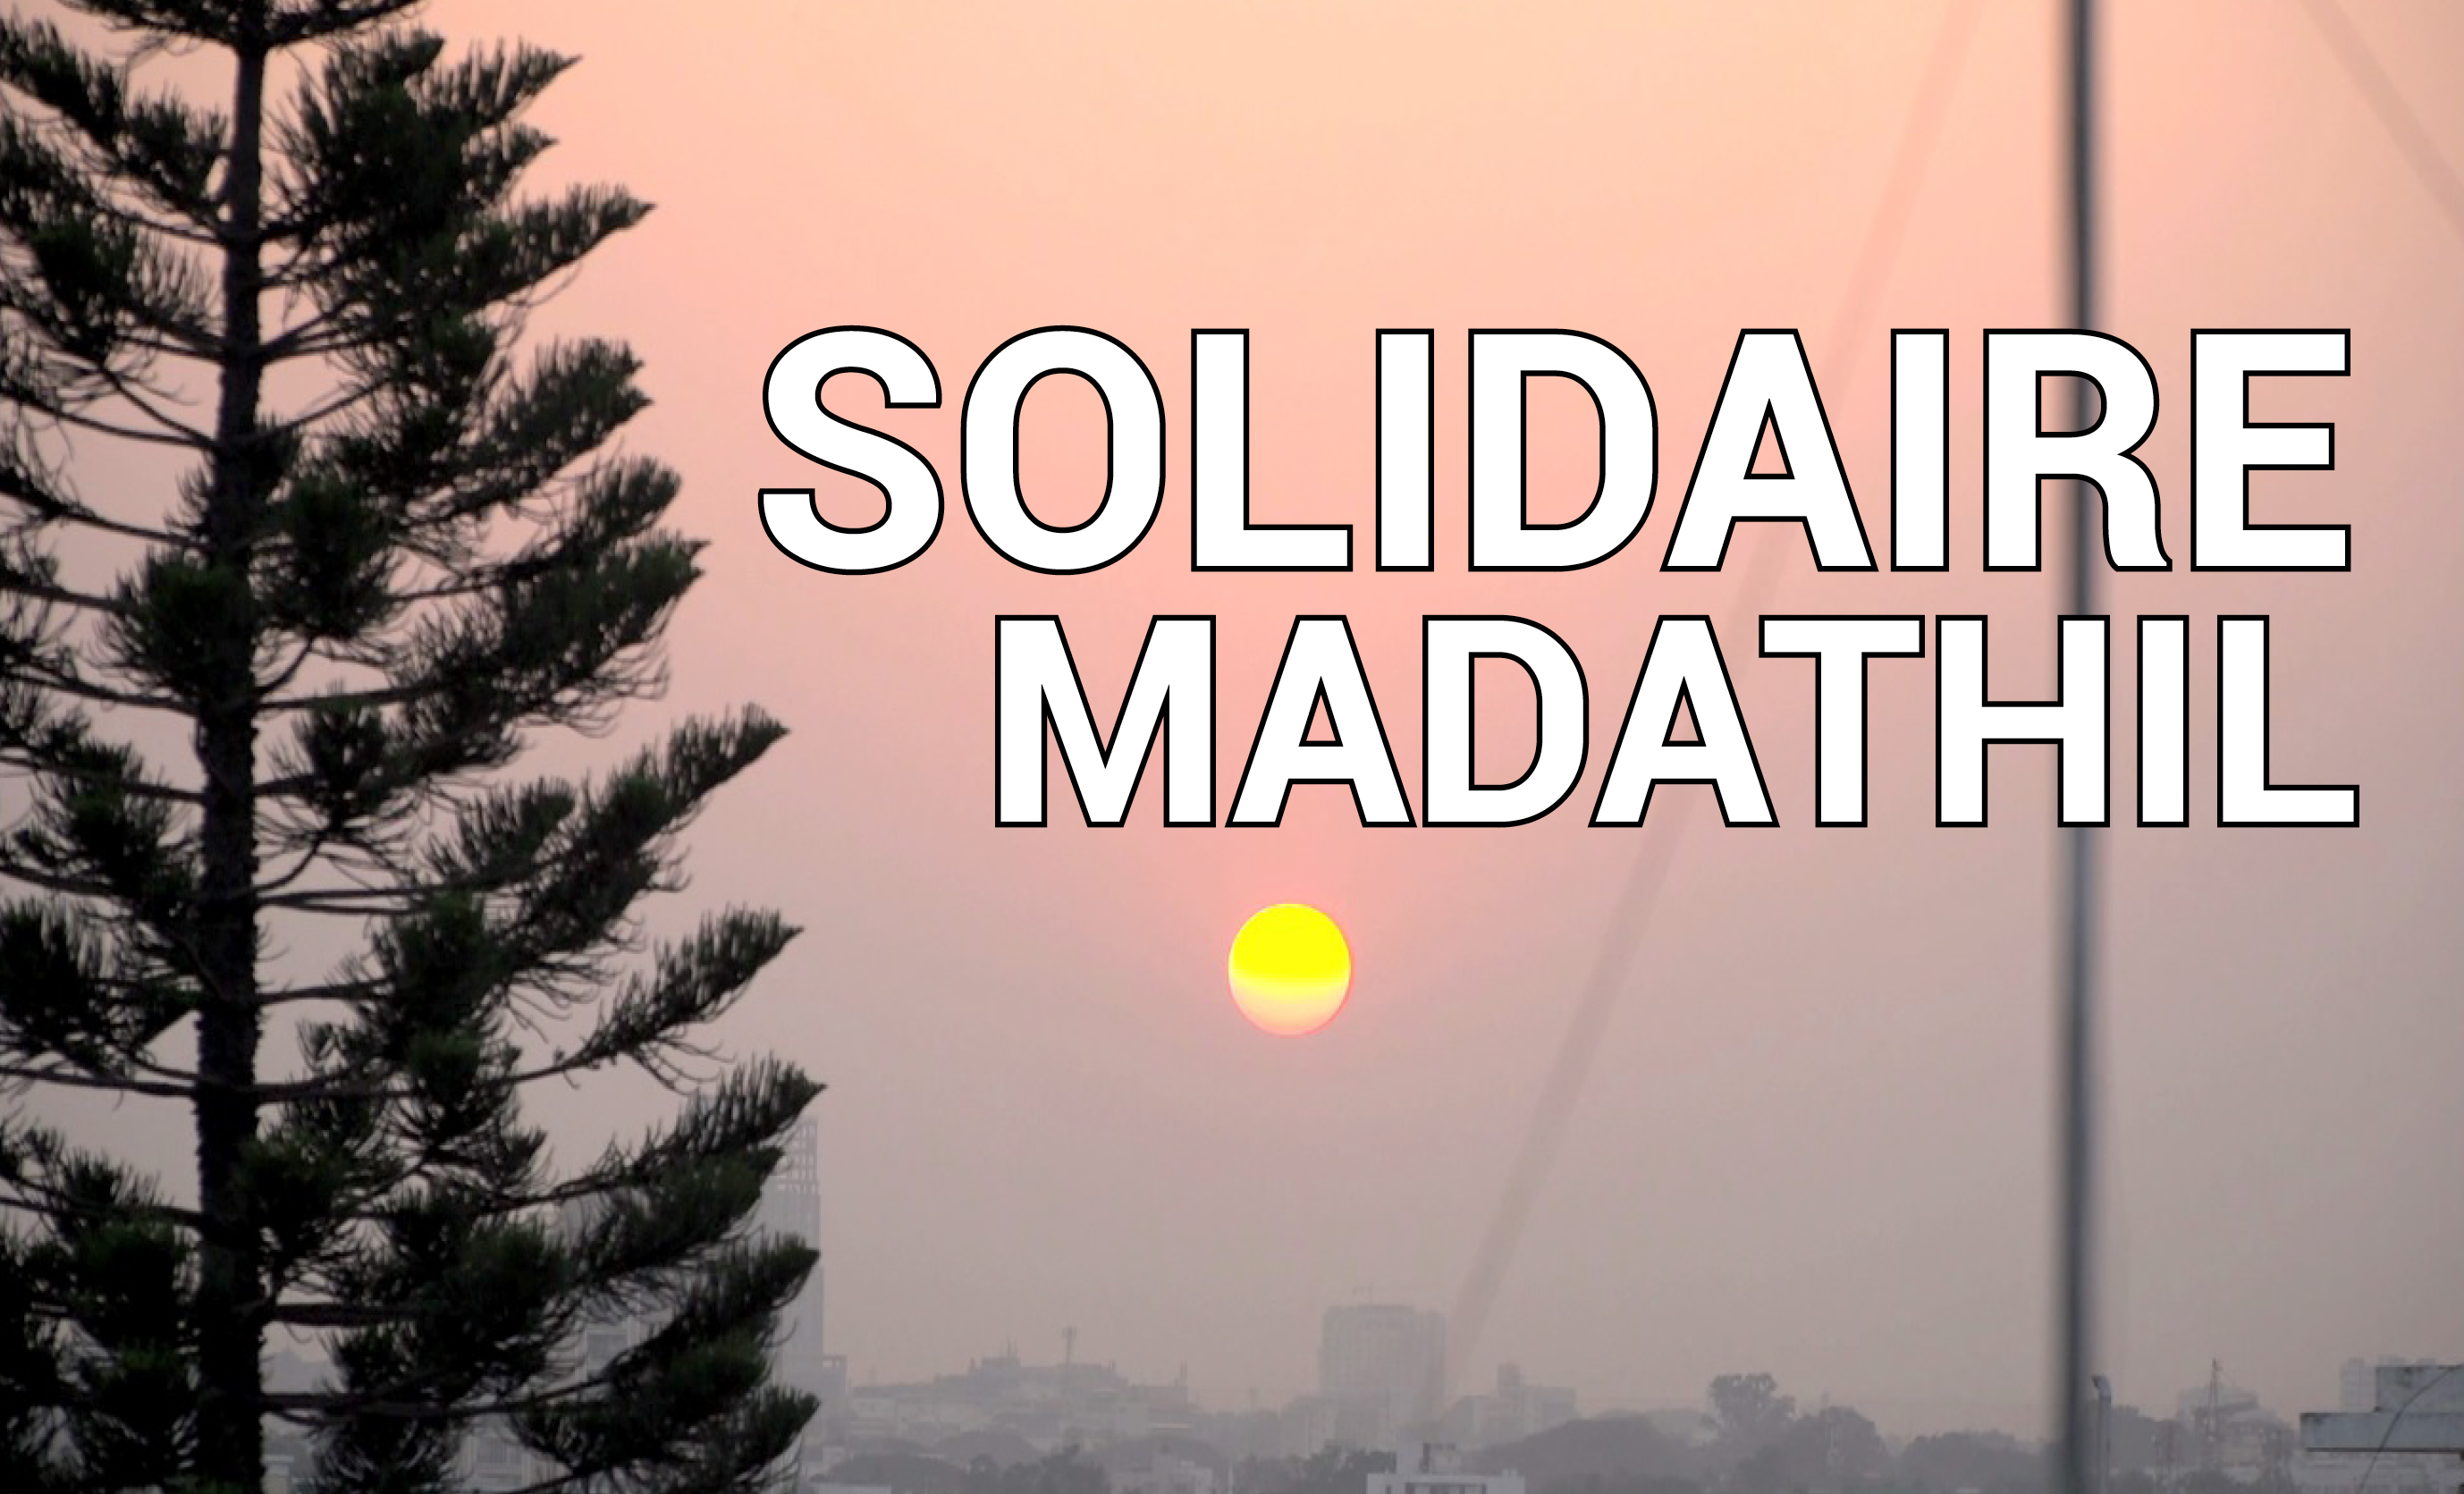 visuel_solidaire3-1528984844.png